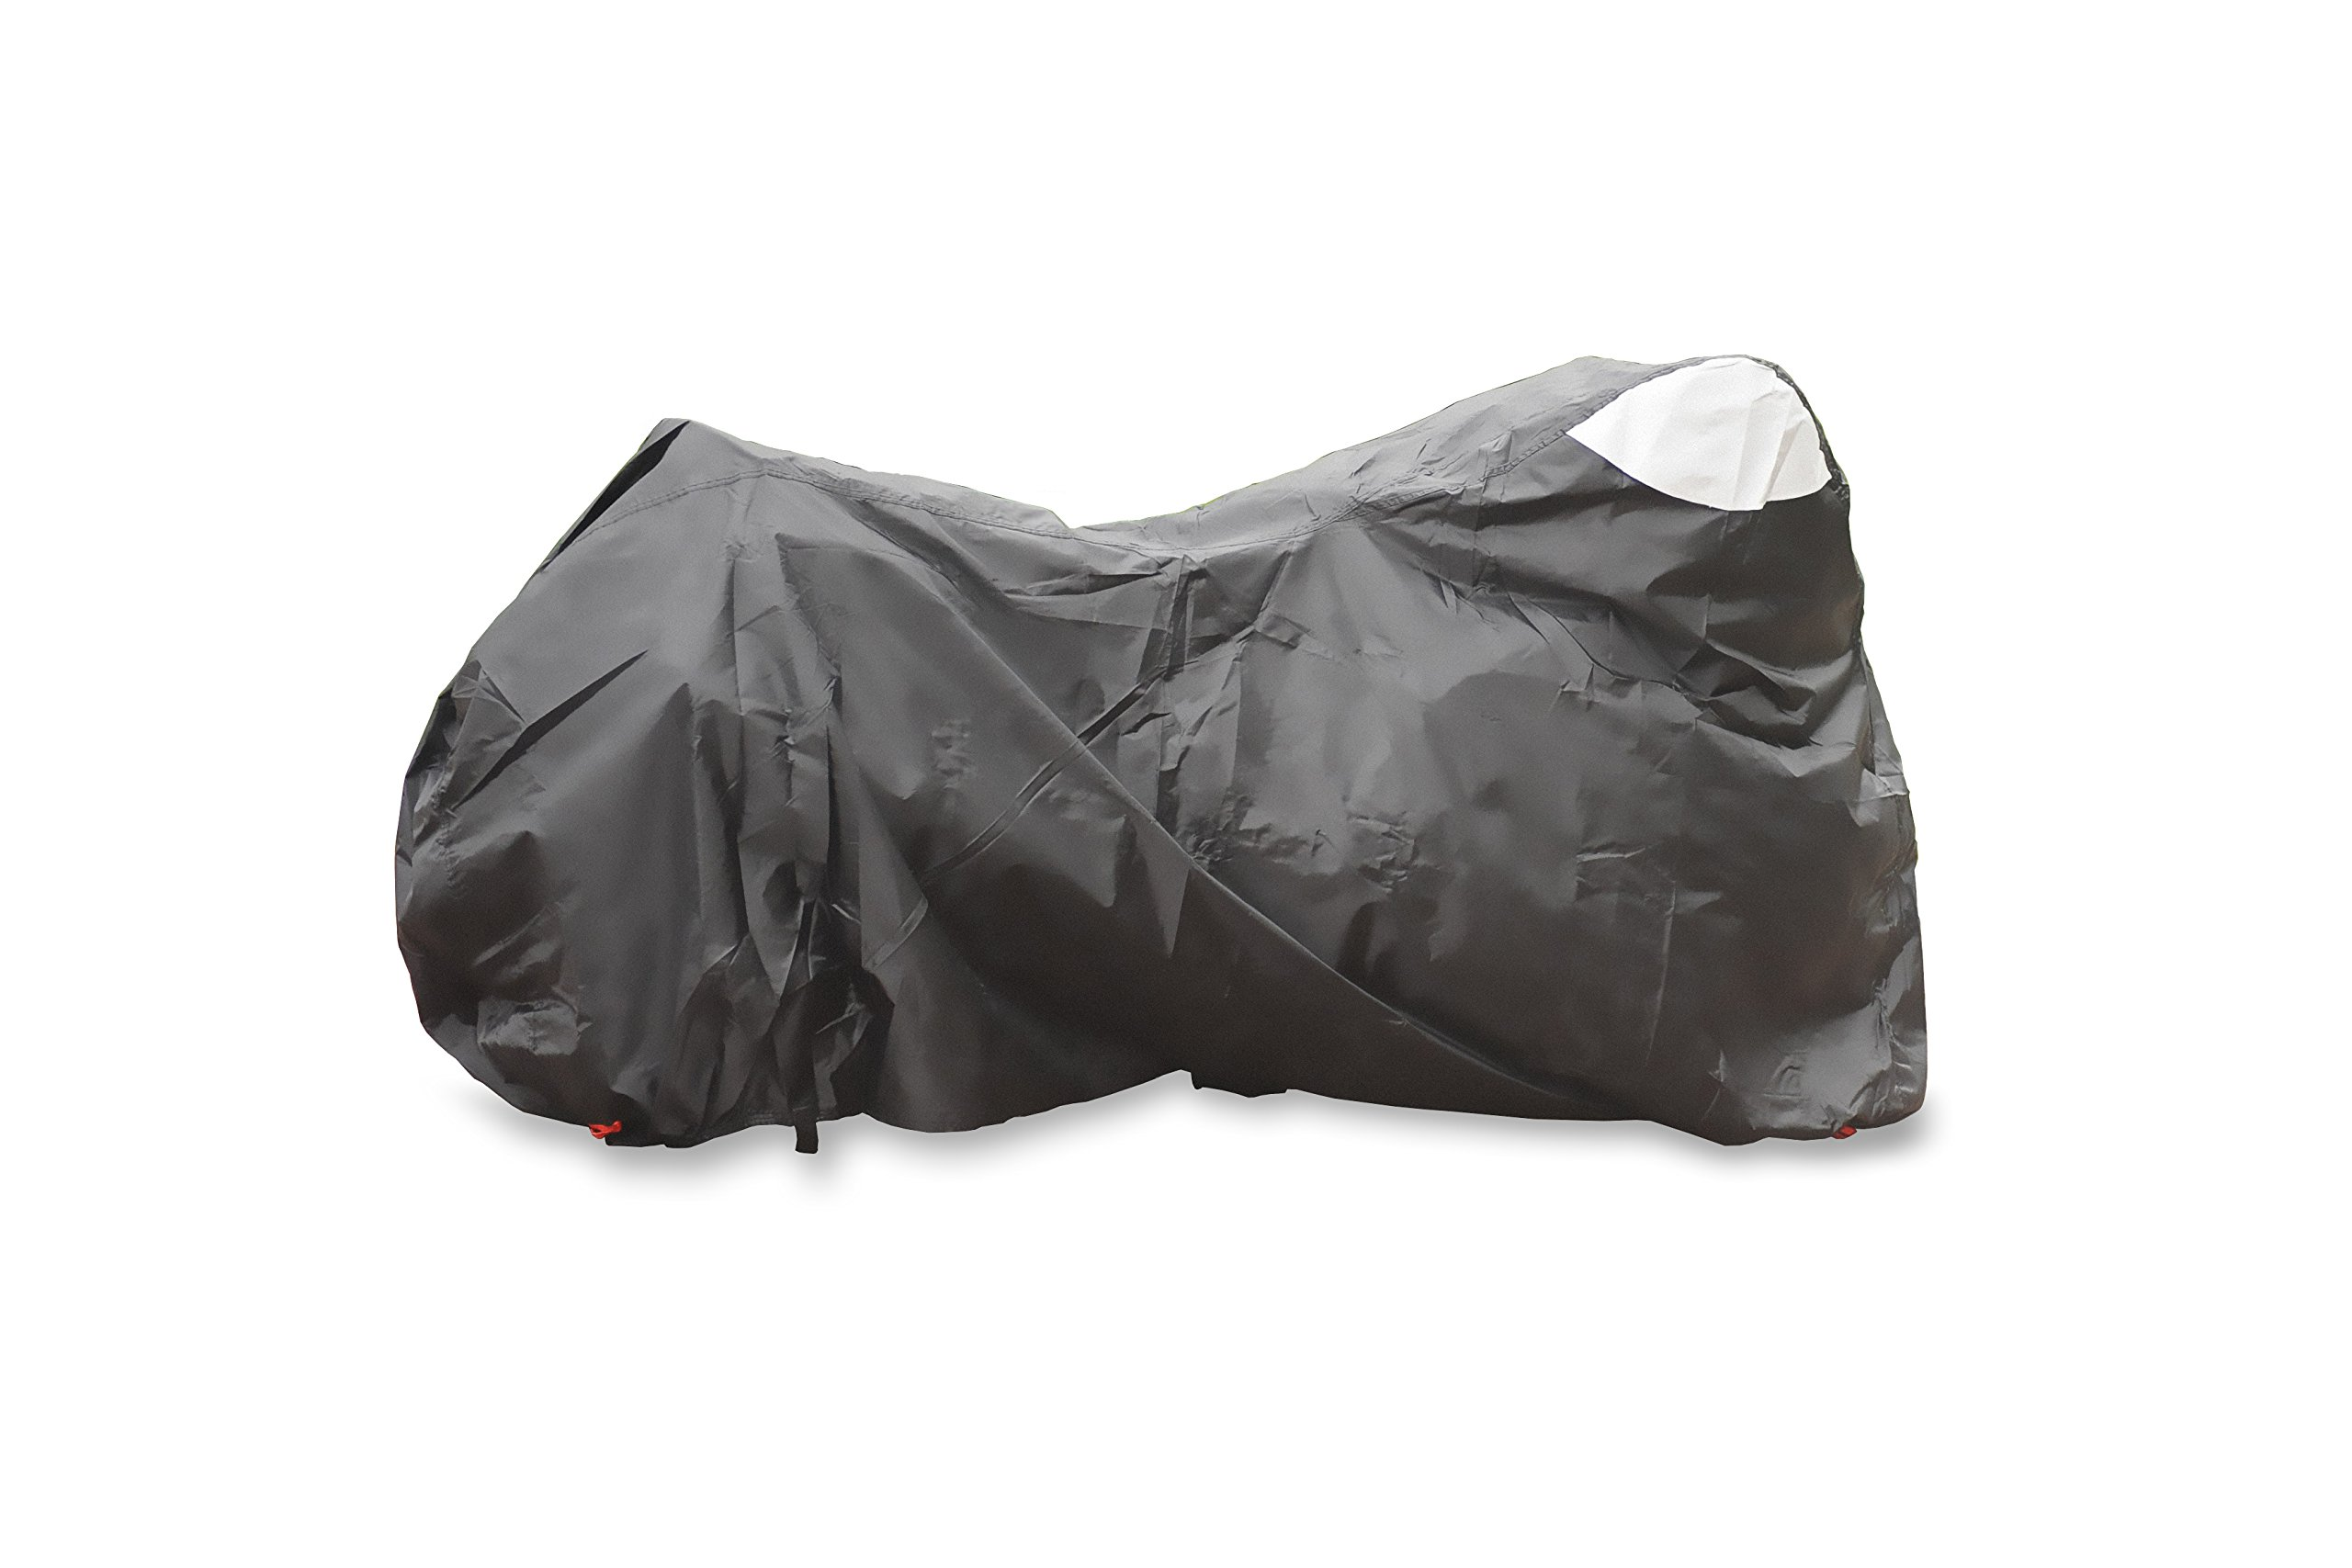 MotionGP Waterproof Outdoor Motorcycle Cover - Made of Durable Material - Fits up to 99'' - Sport and Touring Bikes Compatible - Harley Davidson, Suzuki, Yamaha, Ducati and More - All Weather - Black